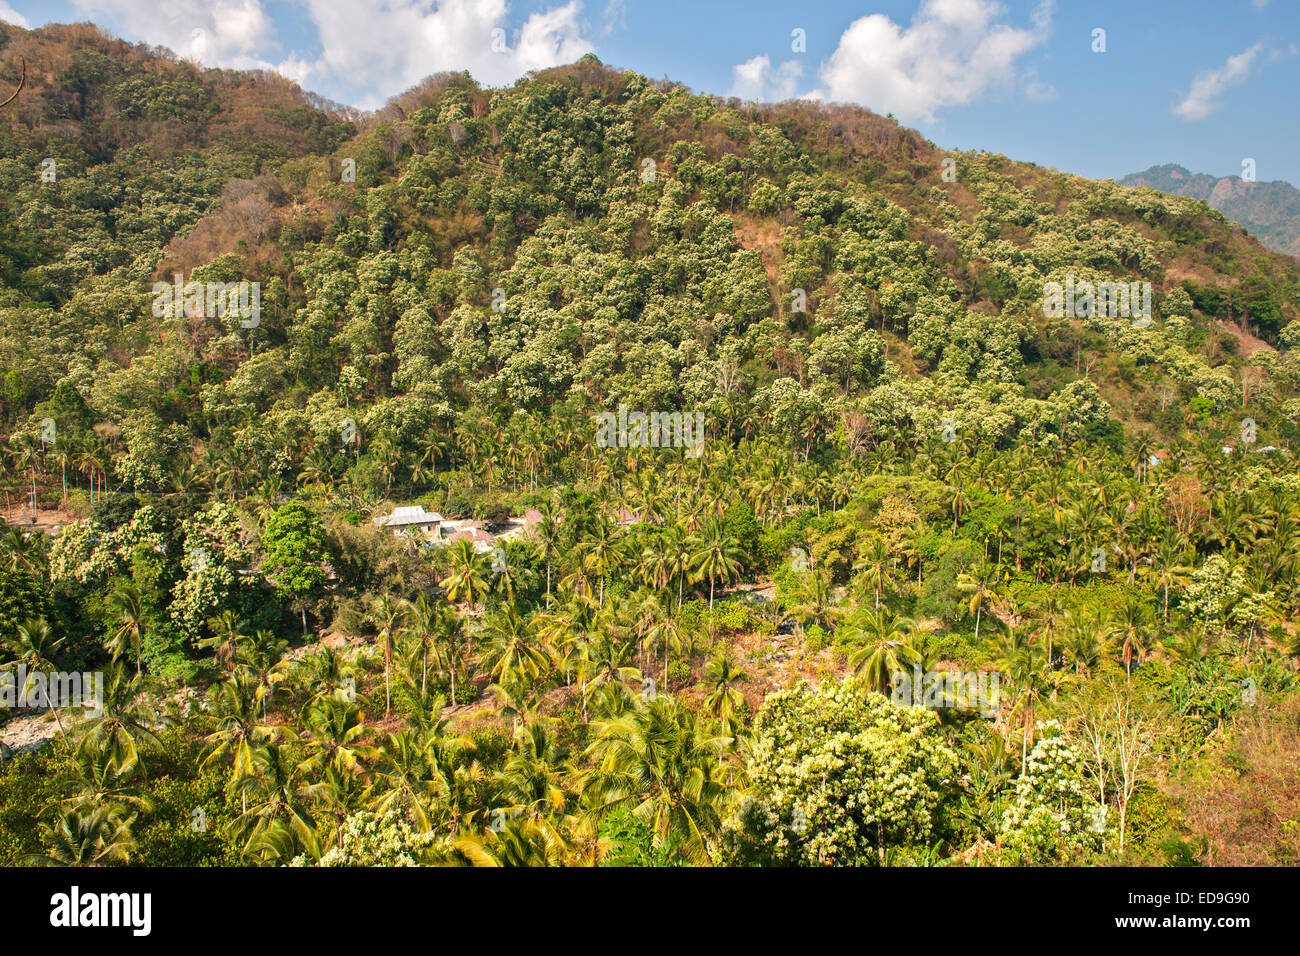 Landscape scenery between the towns of Maumere and Moni on Flores island, Indonesia. Stock Photo